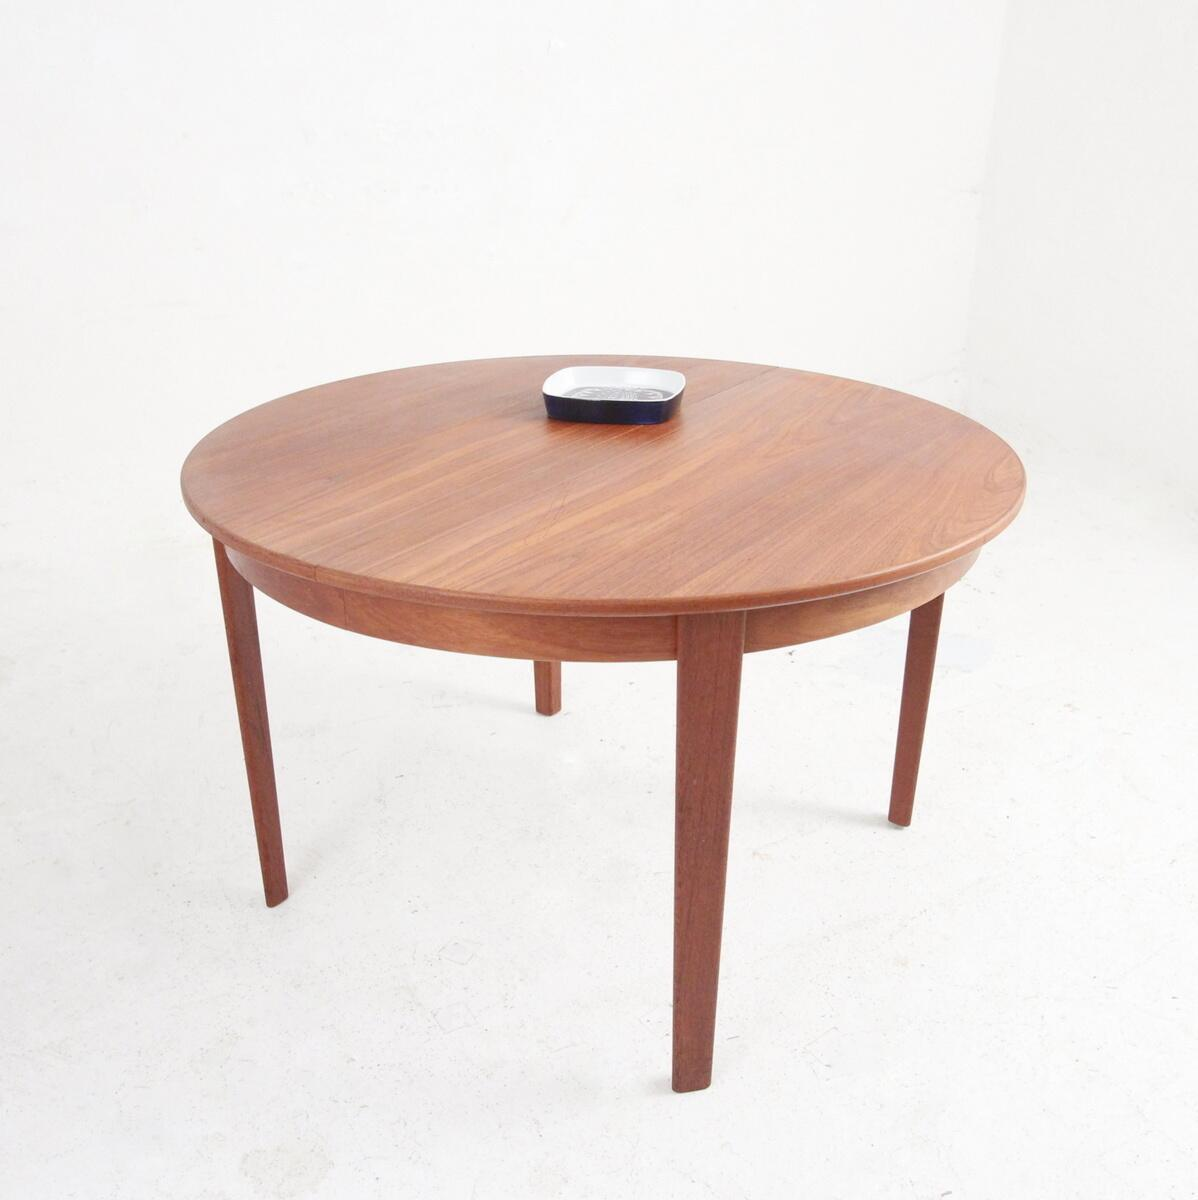 Danish Midcentury Round Dining Table With Extensions